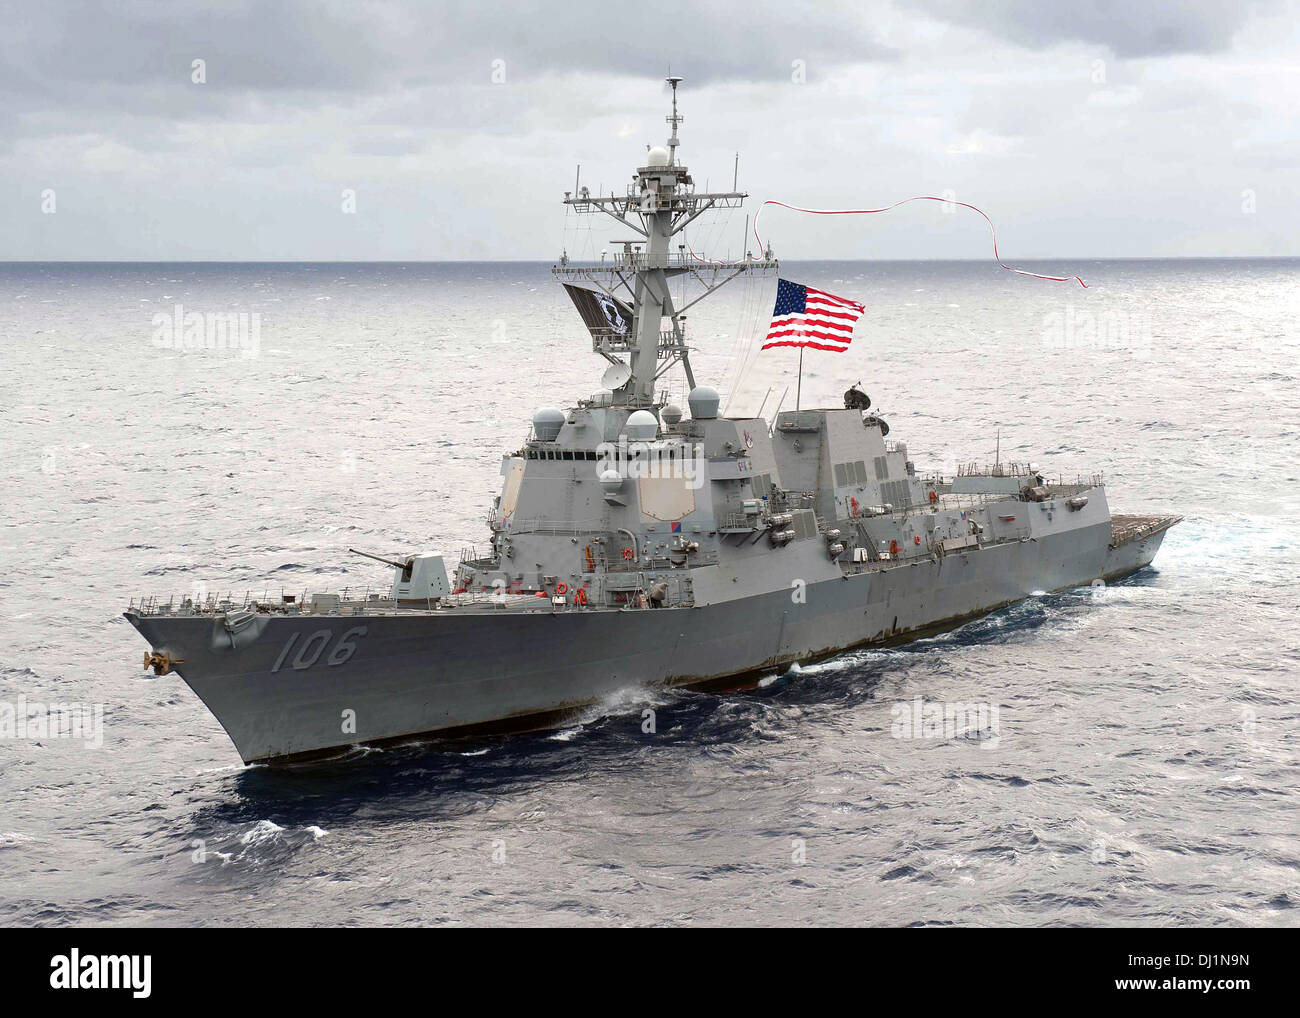 US Navy Arleigh Burke-class guided-missile destroyer USS Stockdale hoists a 240-foot homeward bound pennant as it - Stock Image